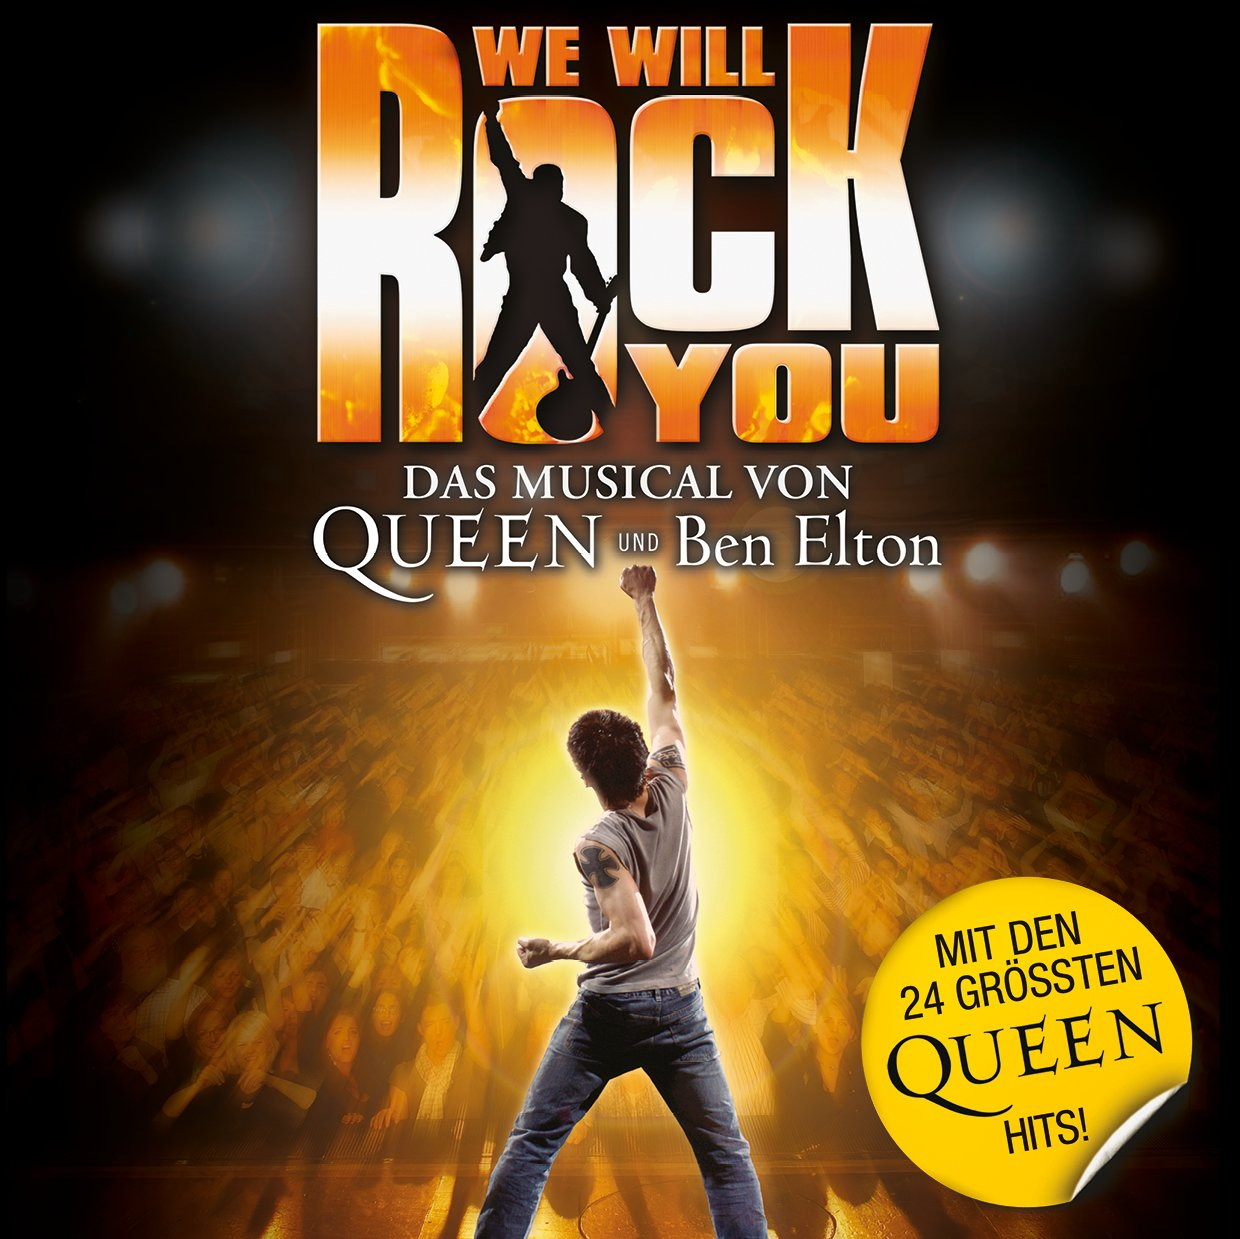 WE WILL ROCK YOU ab Herbst 2021 auf Tour